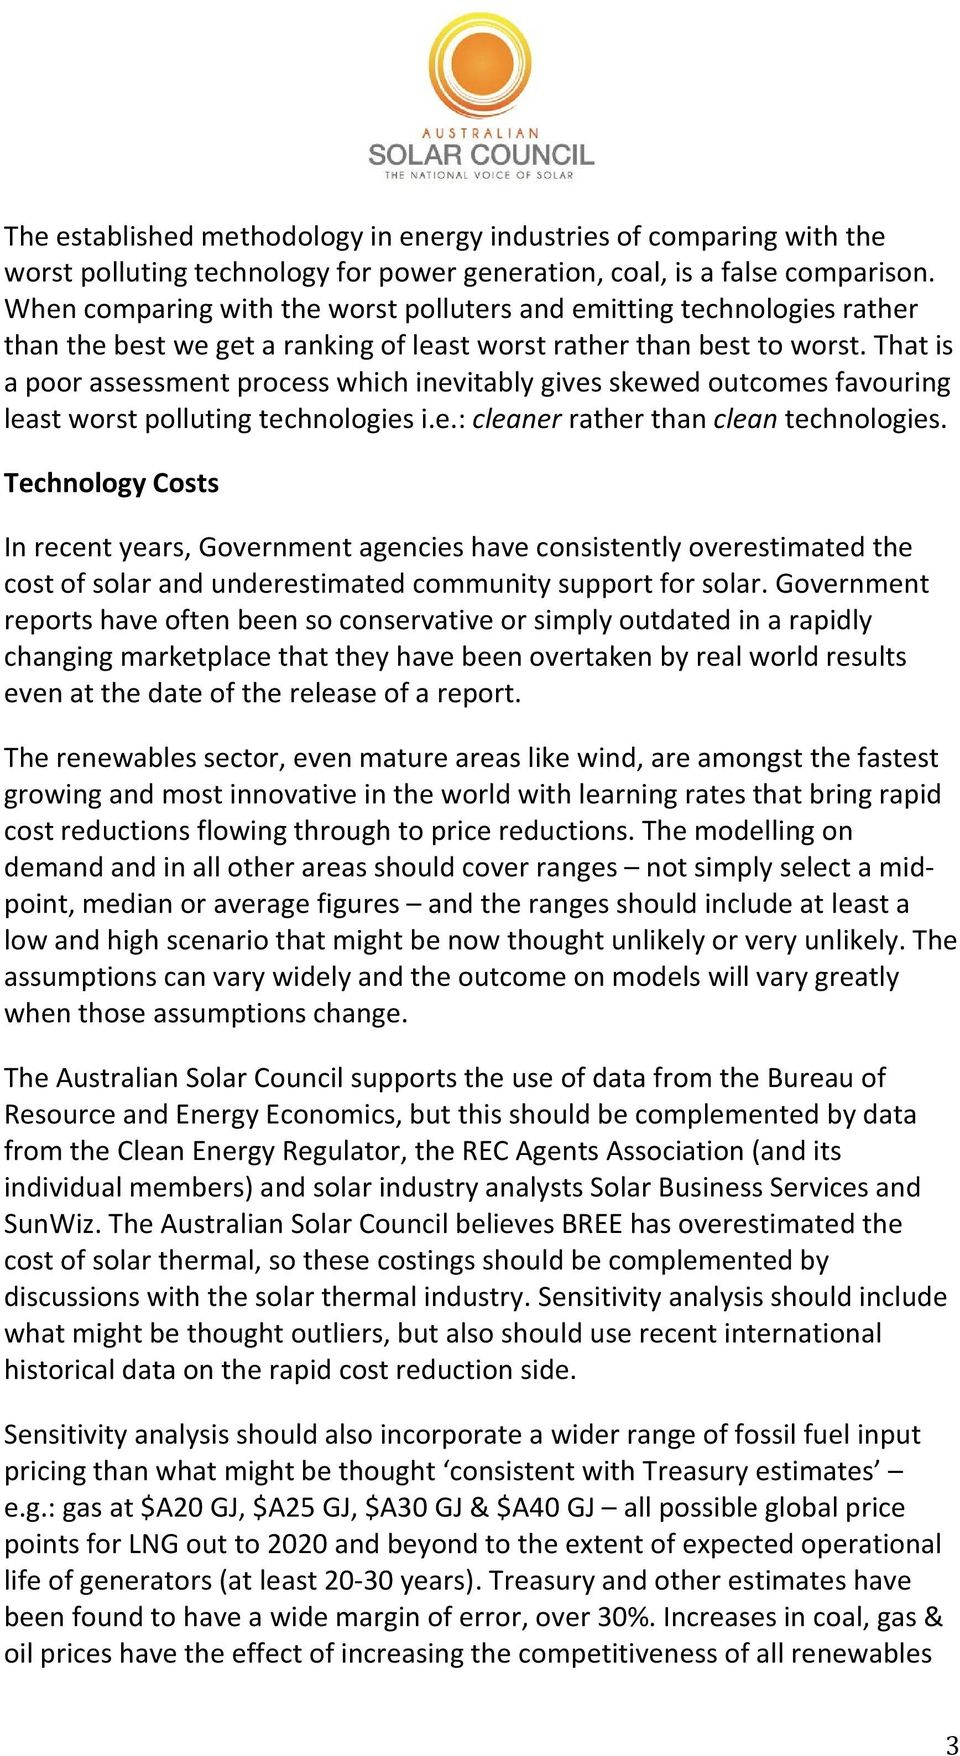 That is a poor assessment process which inevitably gives skewed outcomes favouring least worst polluting technologies i.e.: cleaner rather than clean technologies.